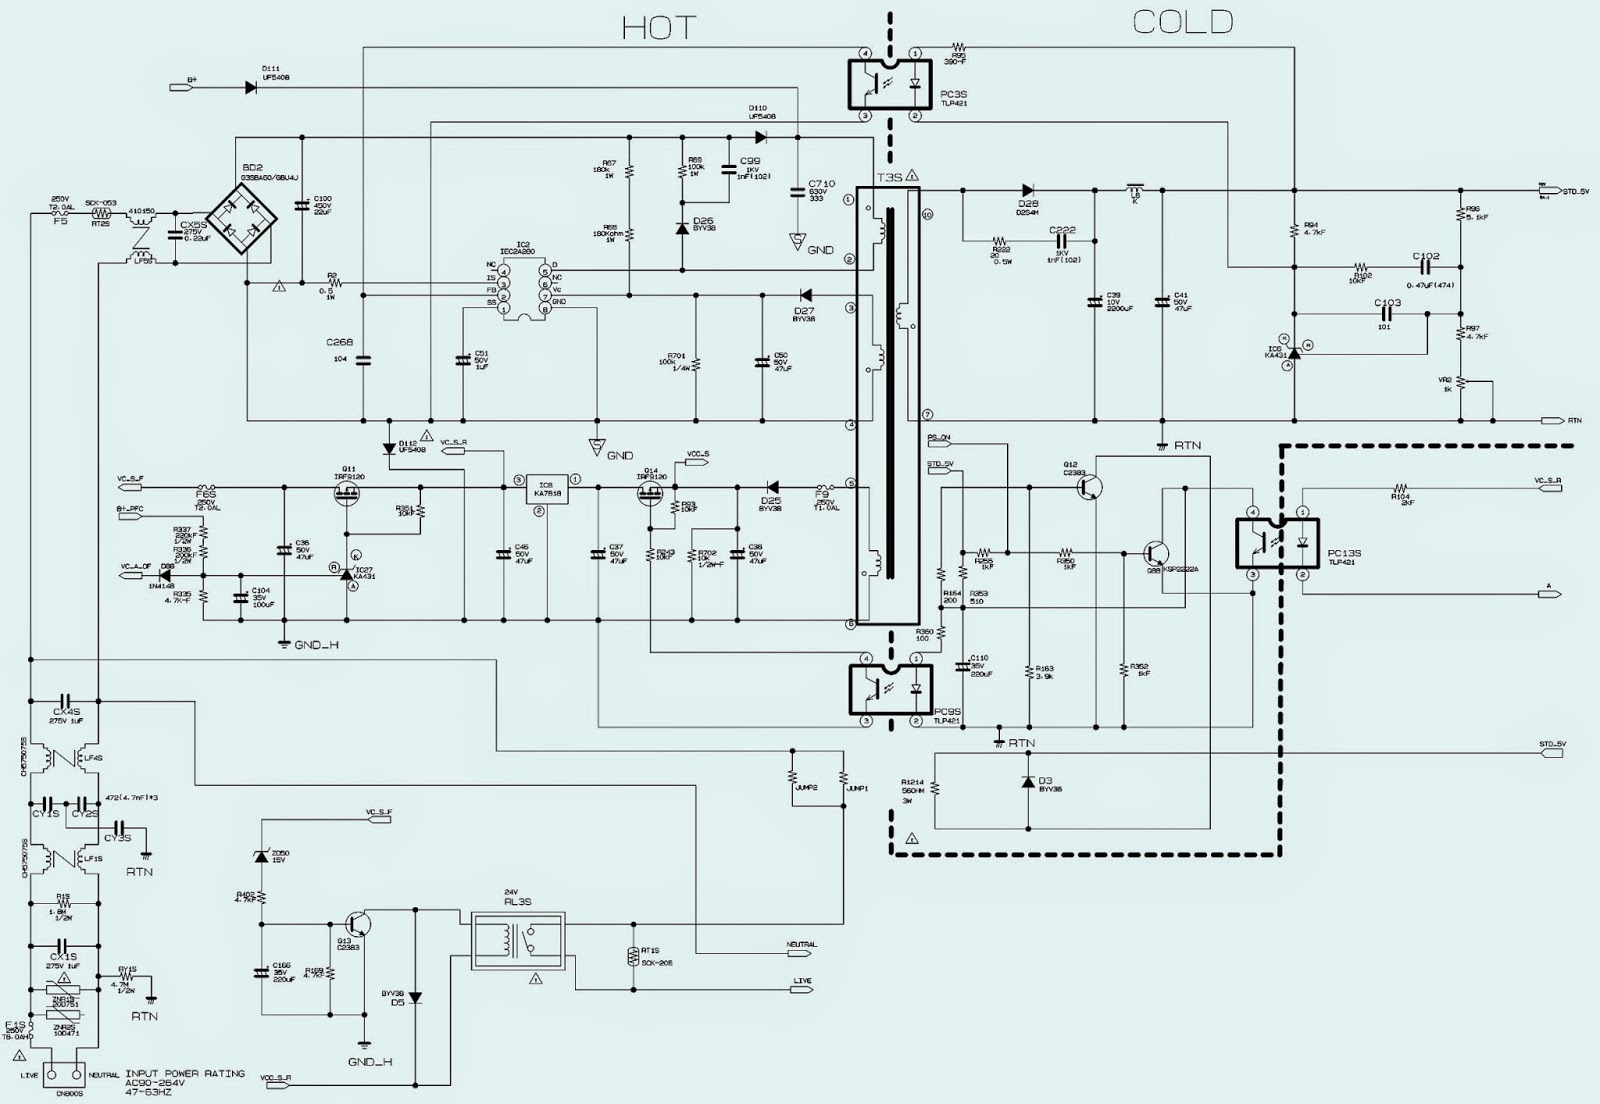 click on schematic to magnify wiring diagram database electro help click on schematic to magnify [ 1600 x 1104 Pixel ]